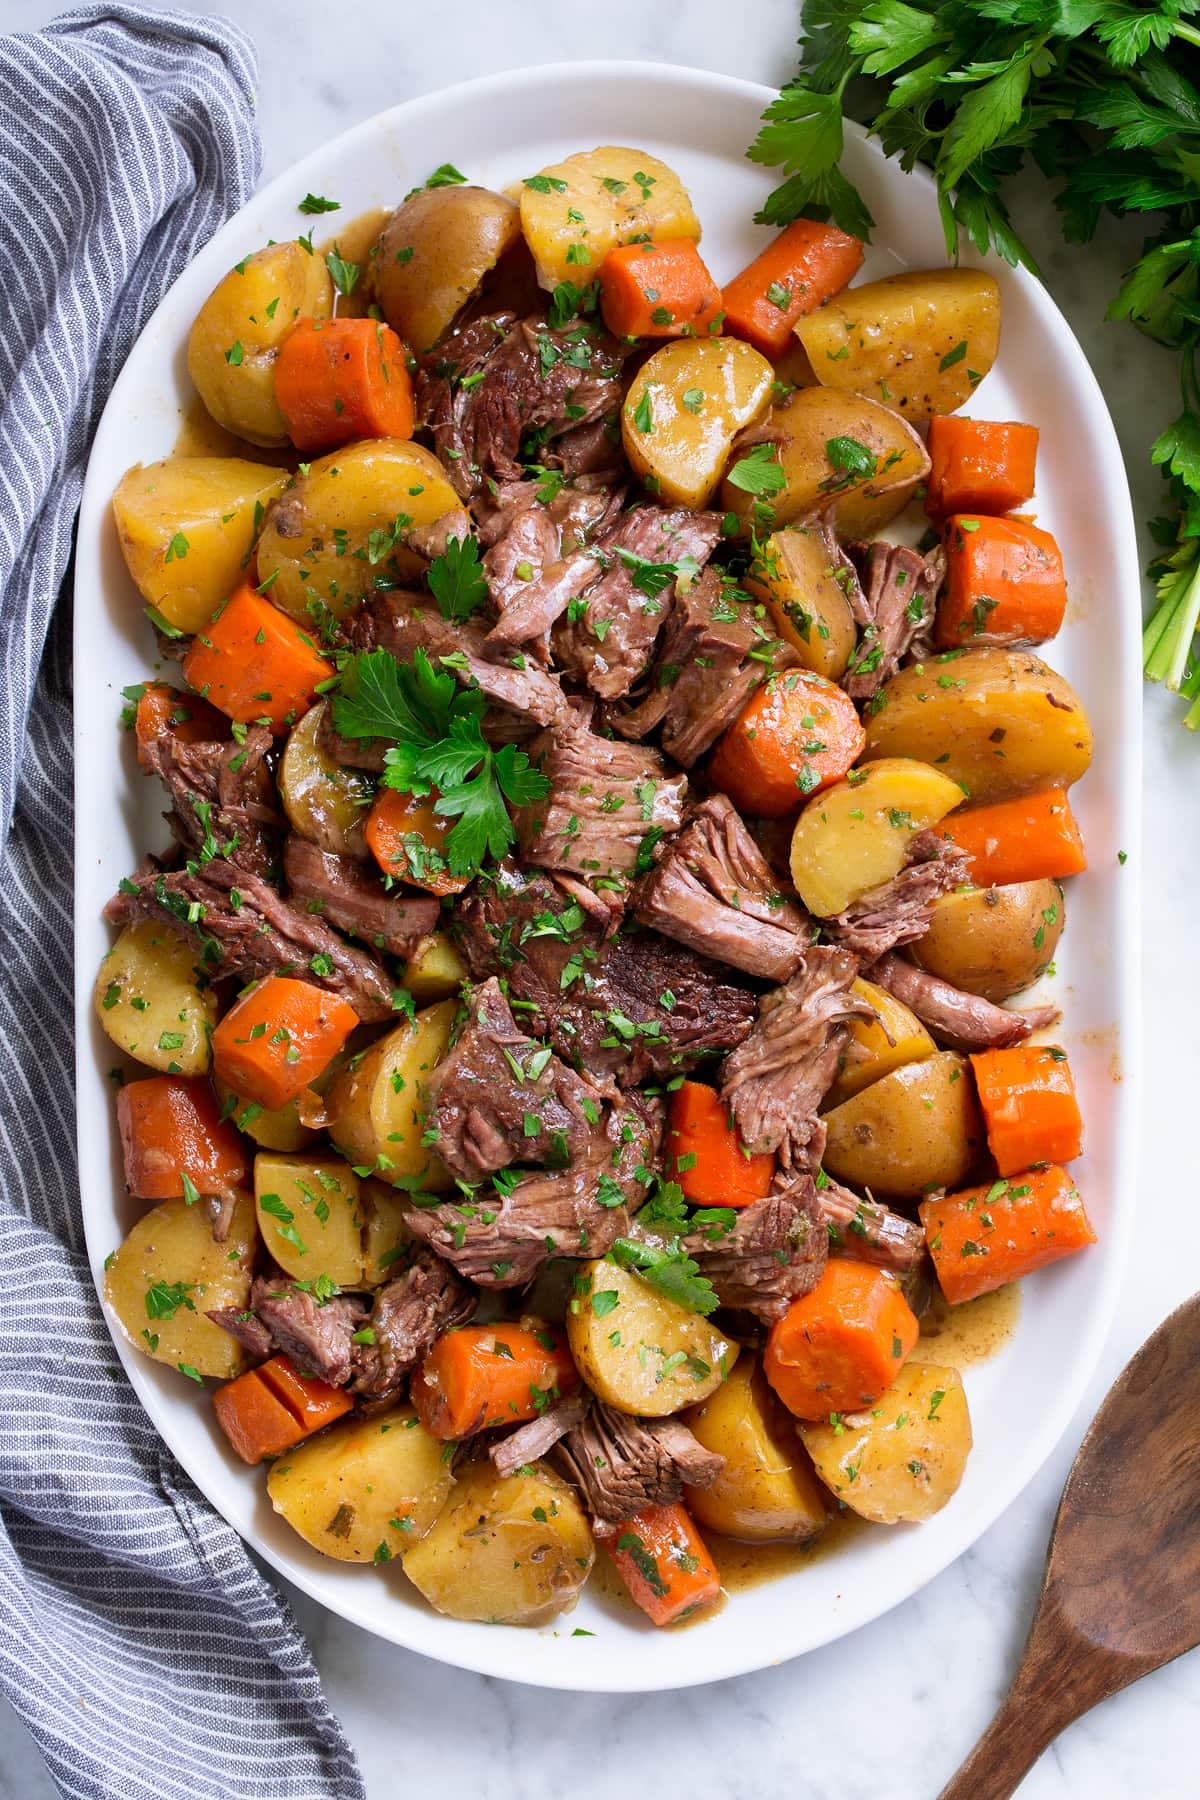 Slow Cooker Pot Roast with potatoes and carrots on a white oval serving platter set over marble.